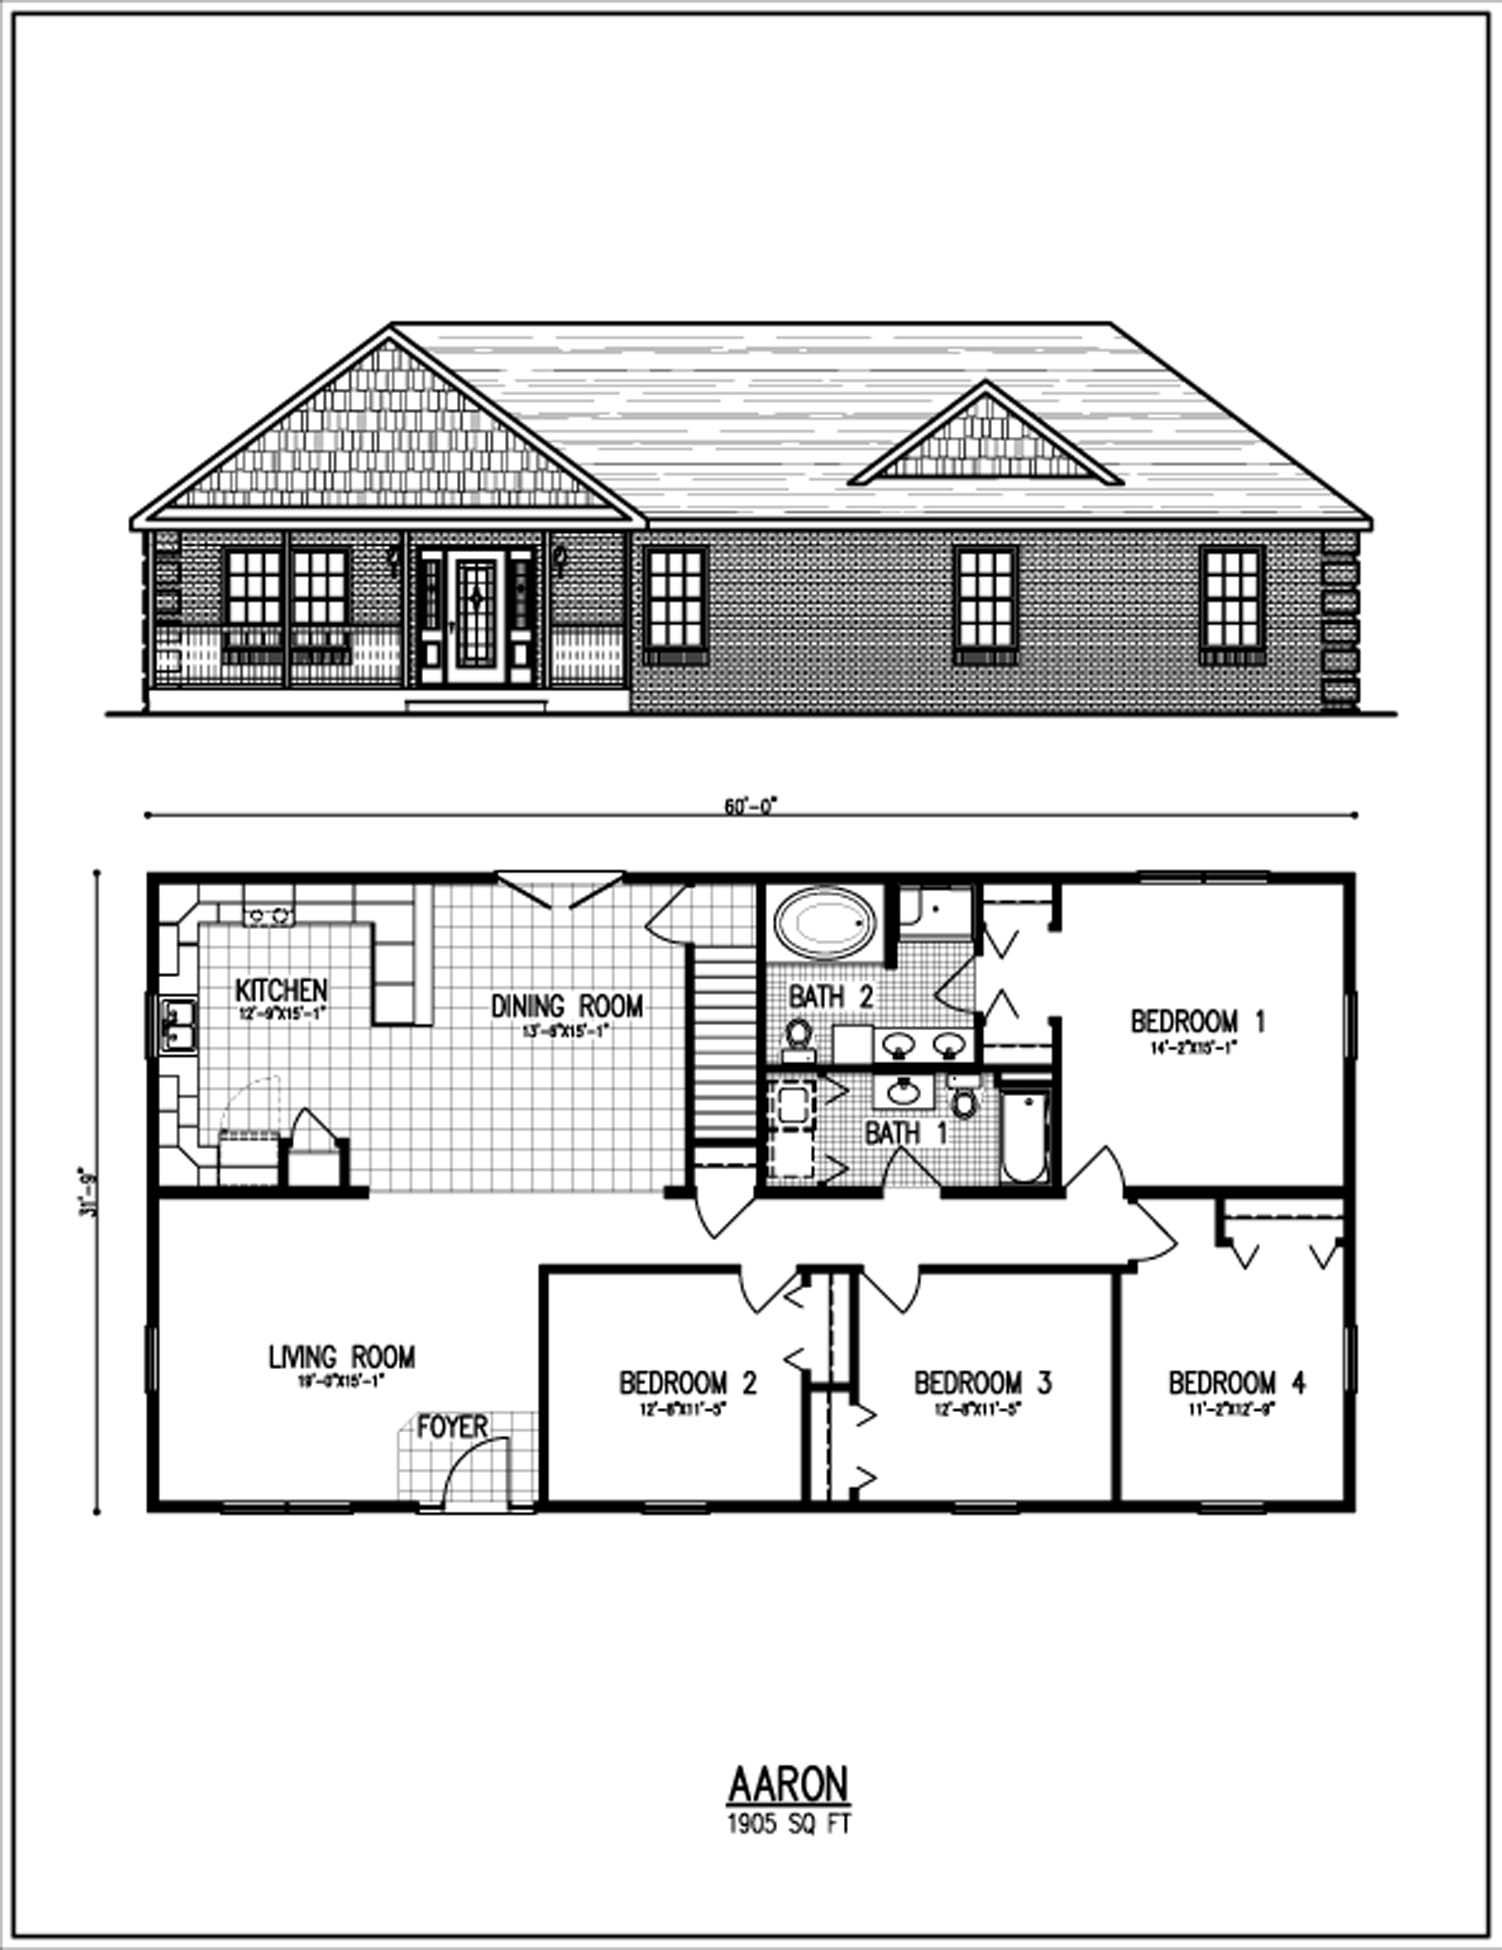 All american homes floorplan center staffordcape for Floor plans online free